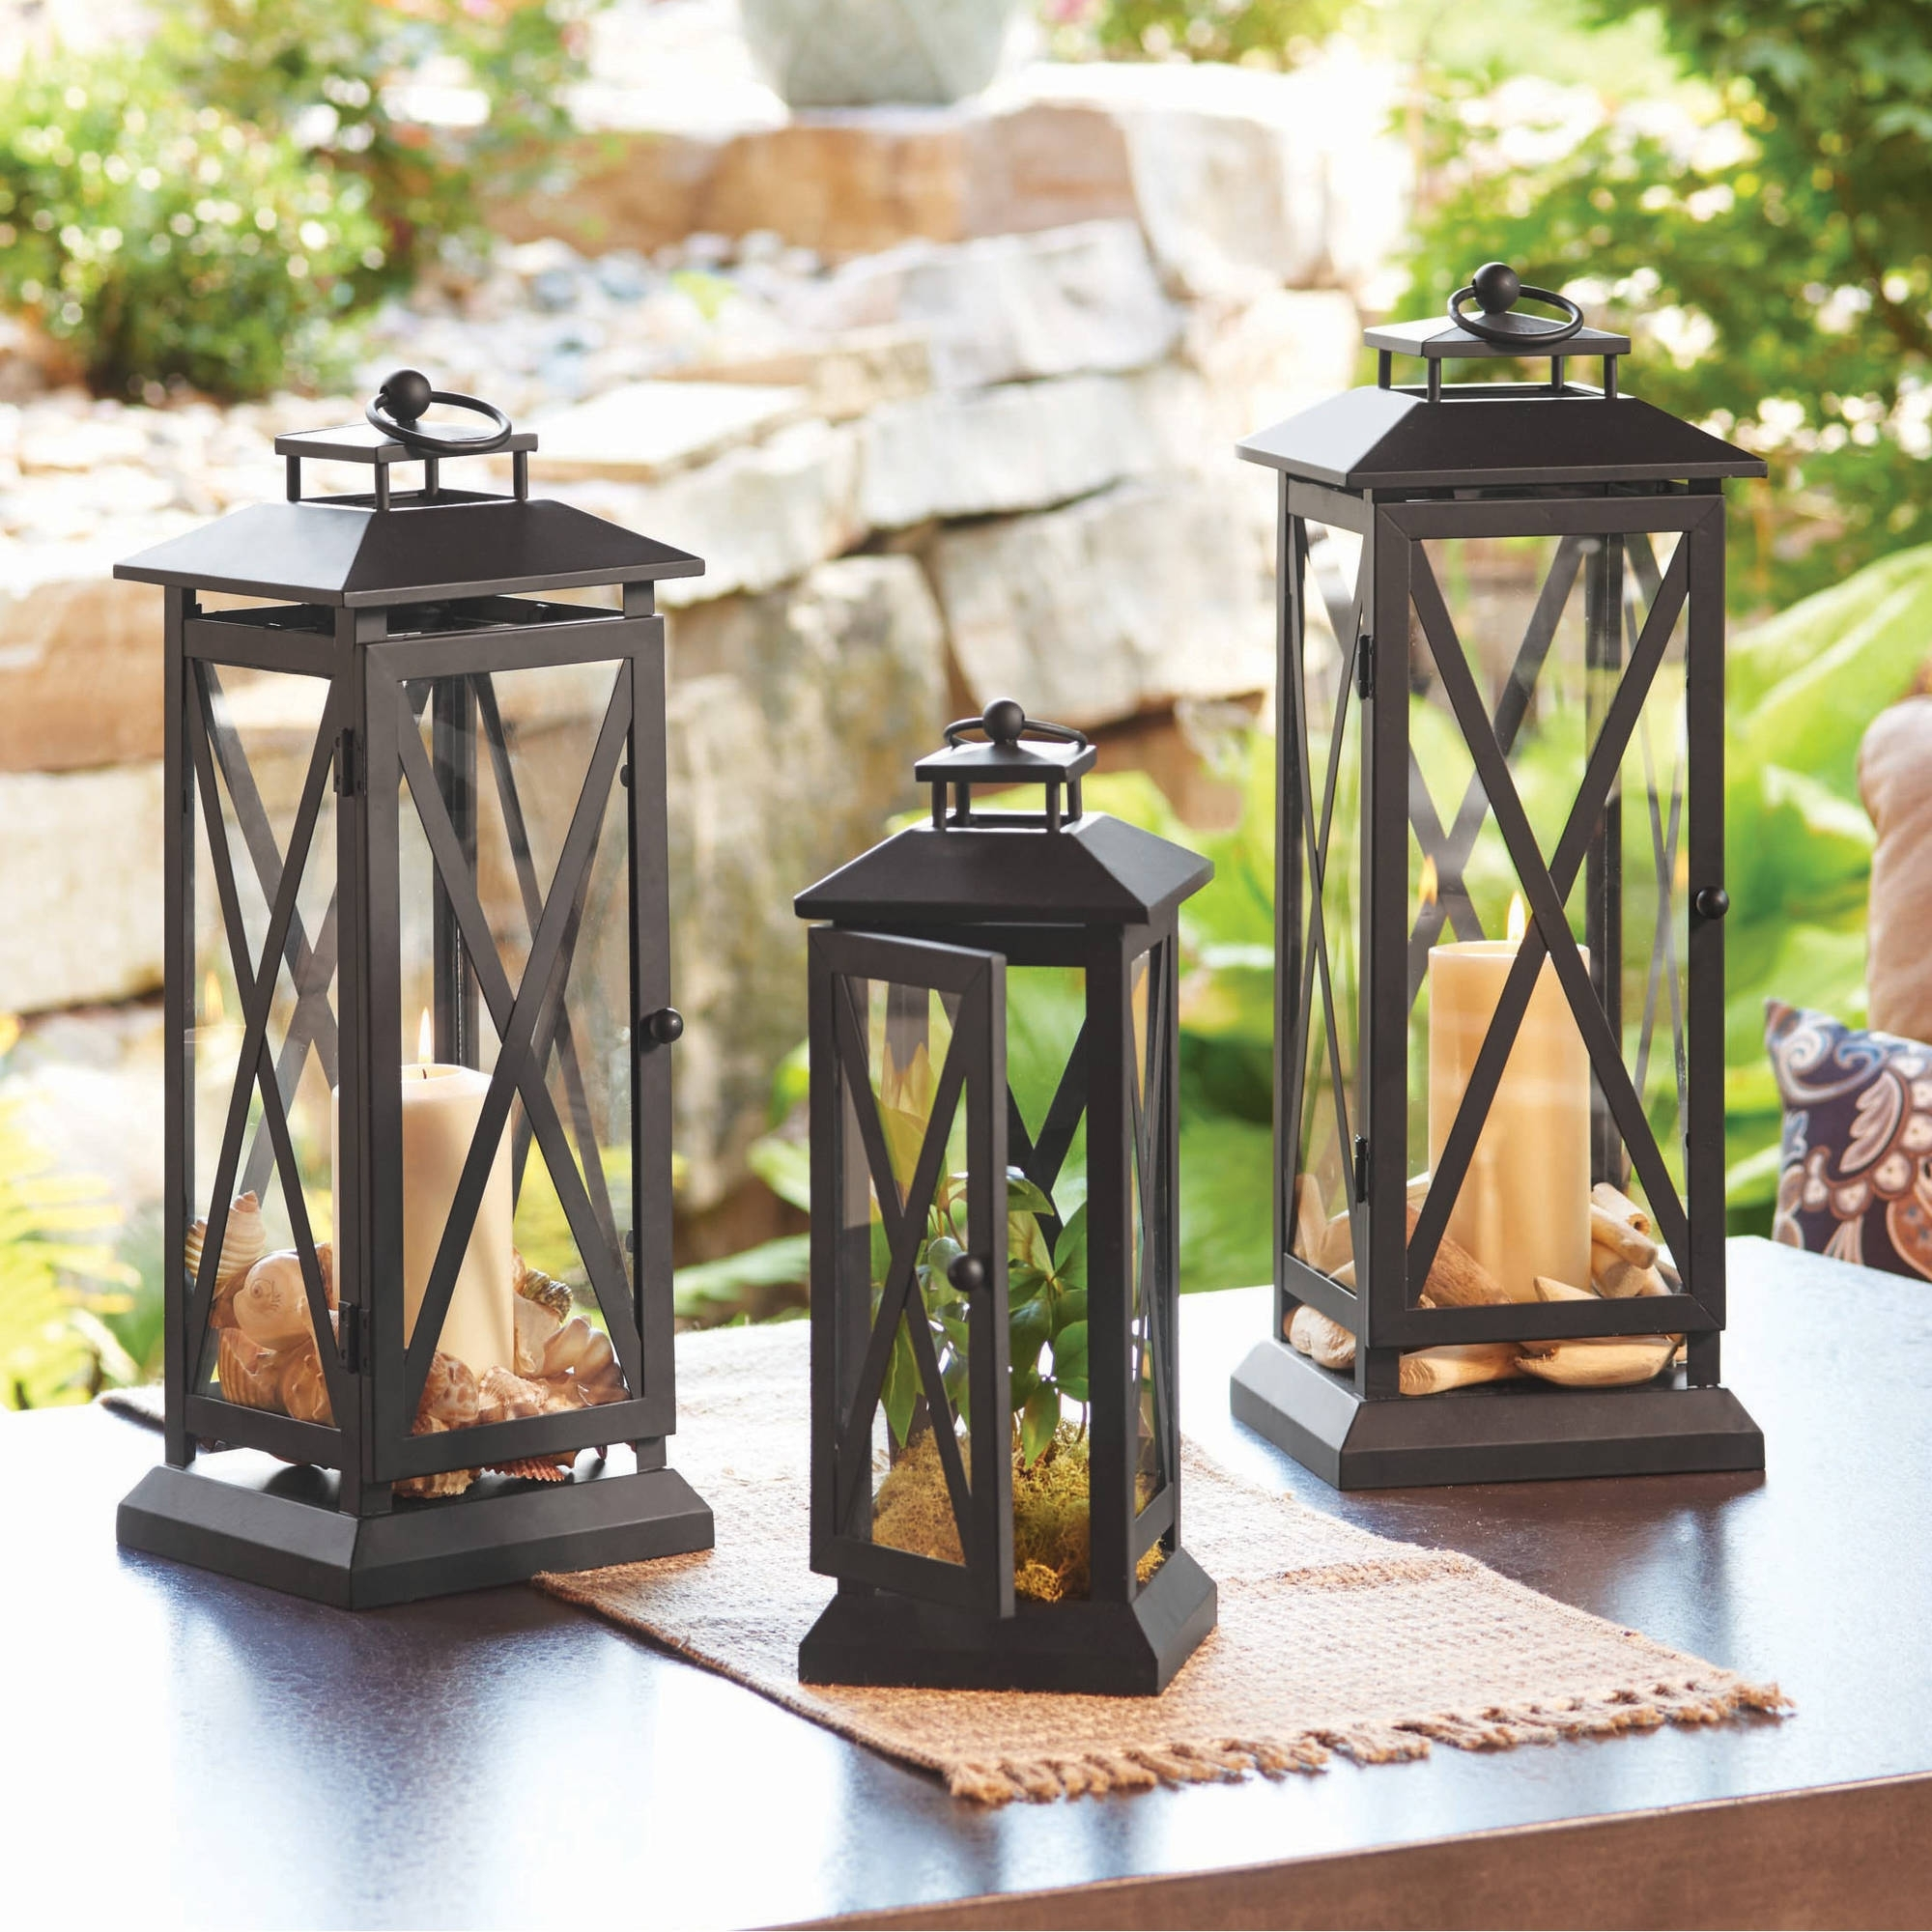 Better Homes And Gardens Crossbar Metal Outdoor Lantern - Walmart for Outdoor Lanterns For Parties (Image 3 of 20)